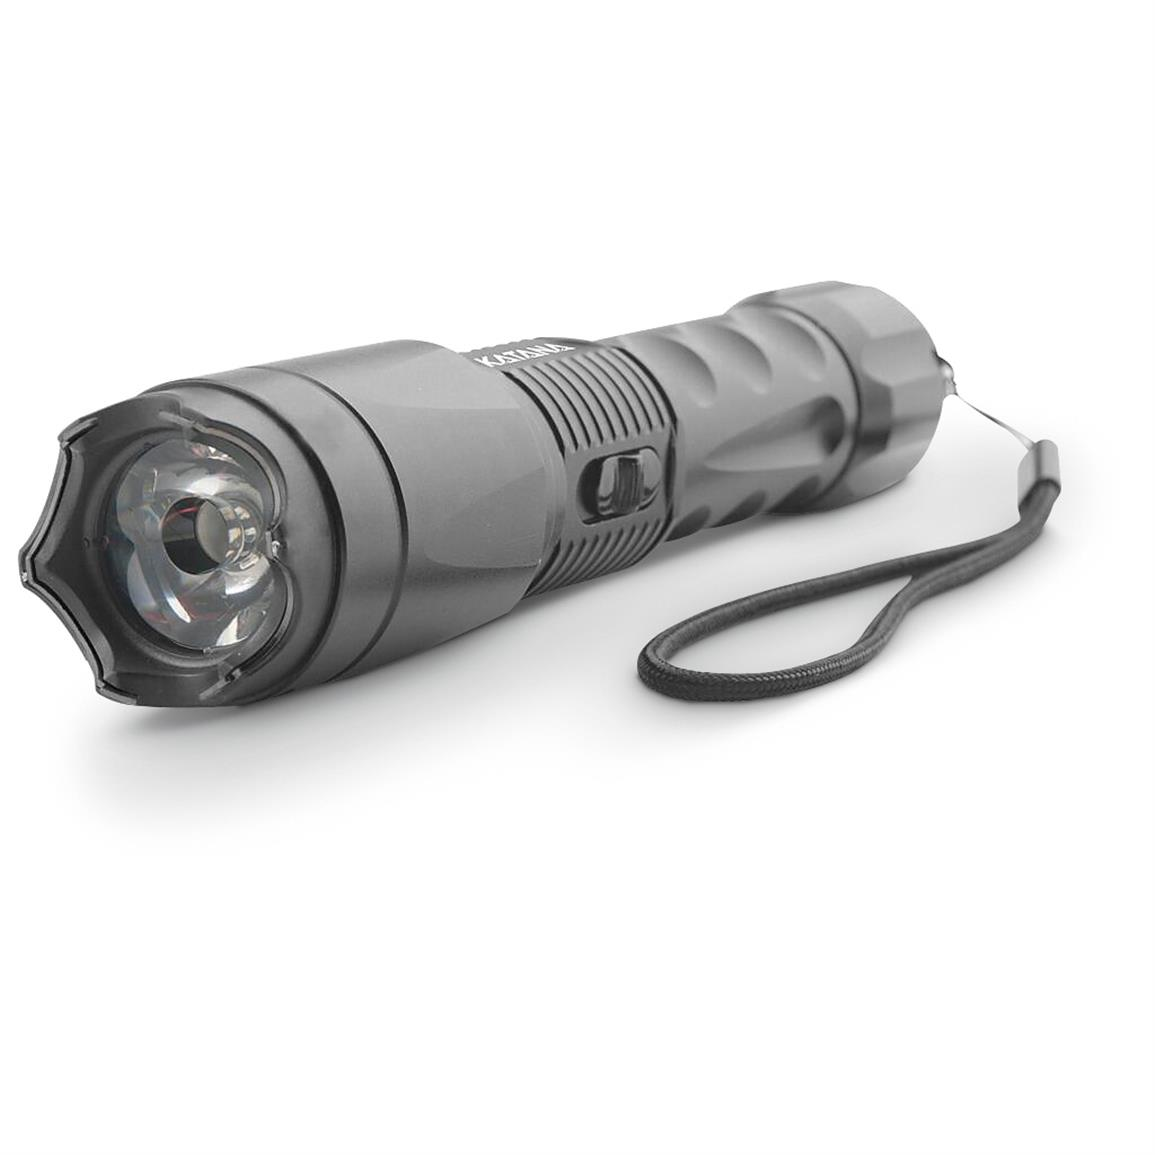 Guard Dog Katana Tactical Flashlight with Stun Gun and Tail Cap Striker